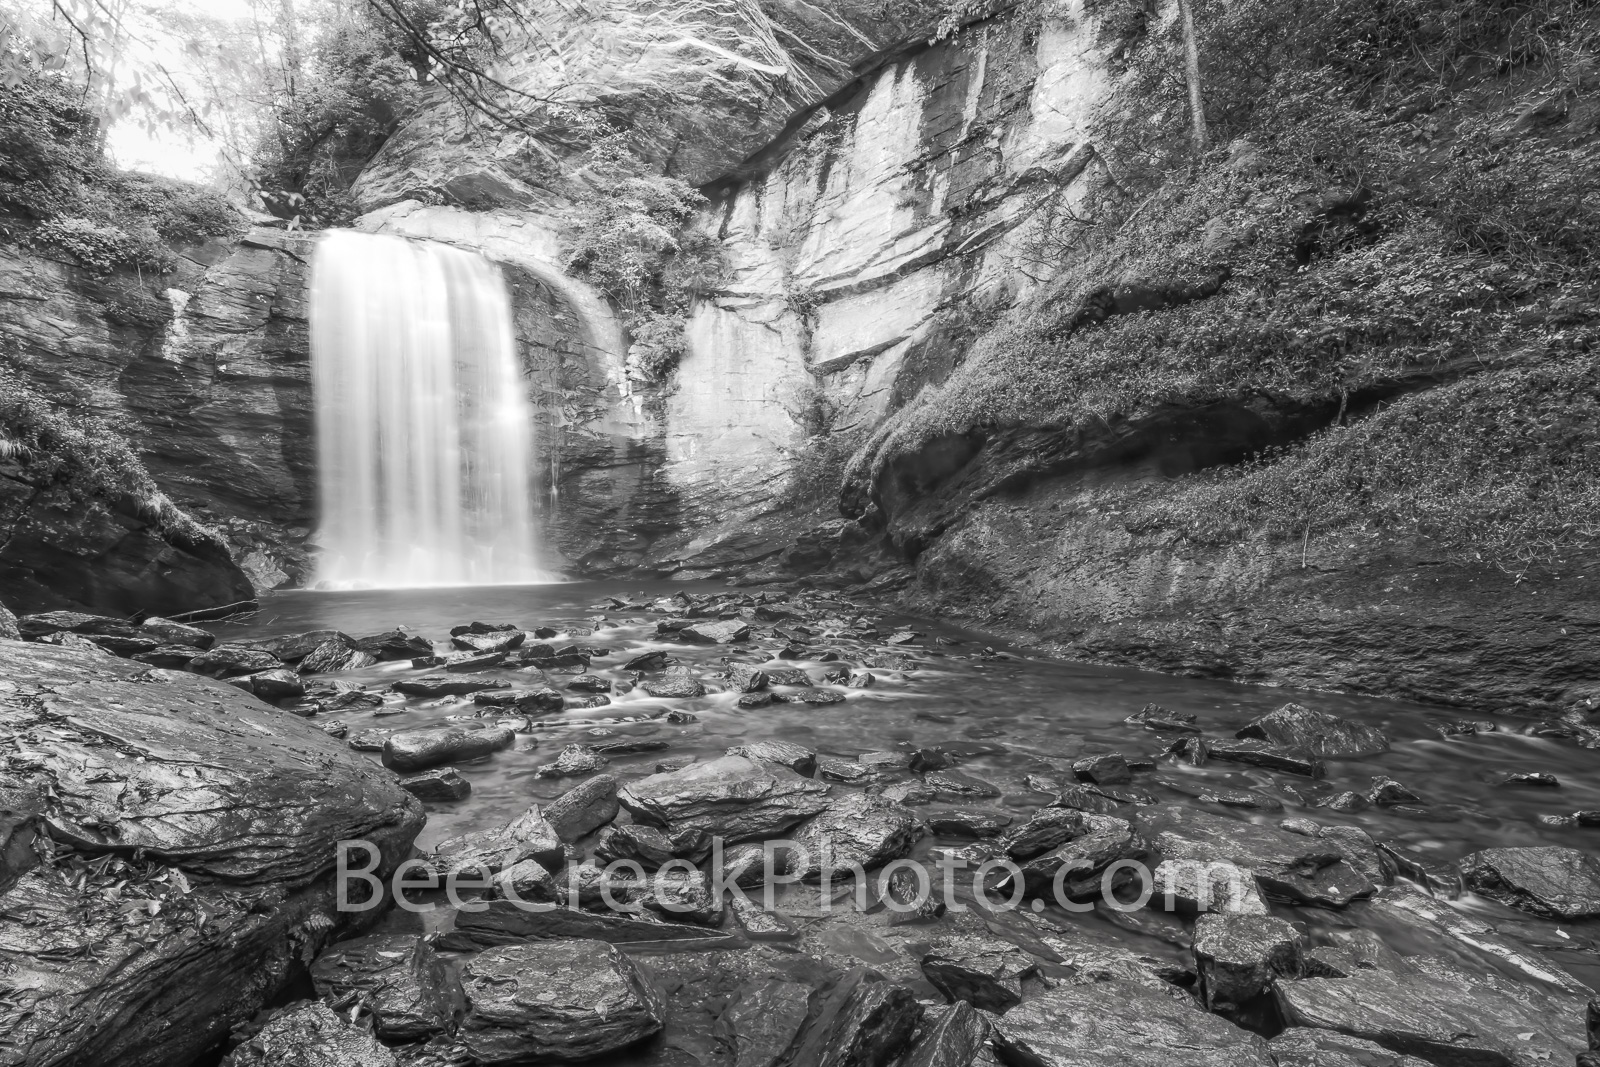 Looking Glass Falls Smoky Mountain B W - Took this picture of looking glass falls in the Smoky Mountains National Park. Looking...